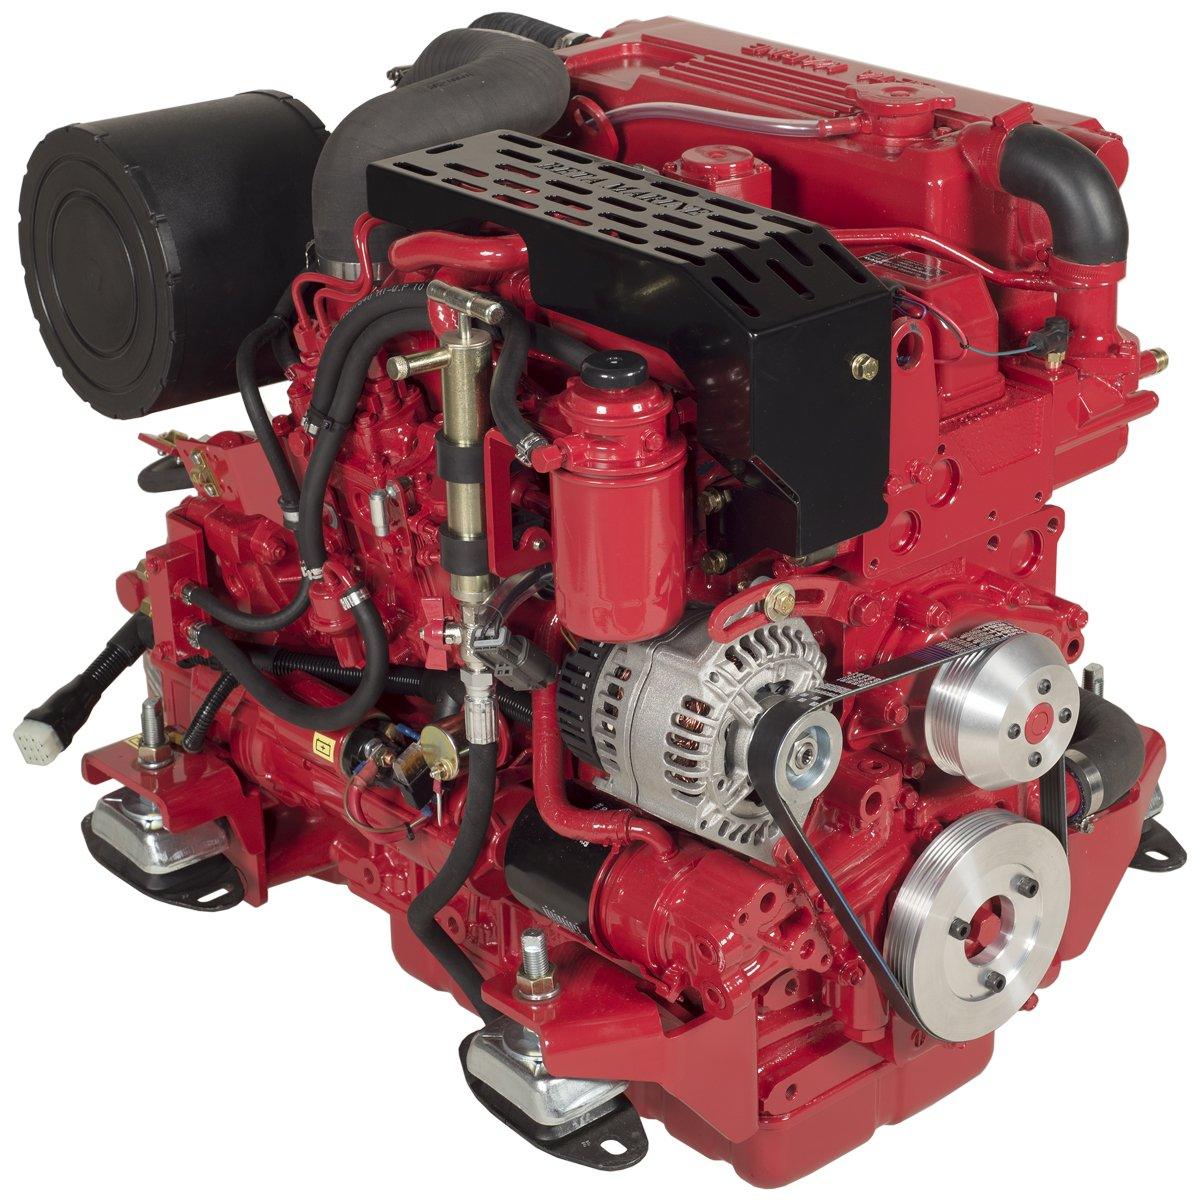 Beta Marine USA - marine diesel propulsion engines - Beta 70T heat exchanger engine